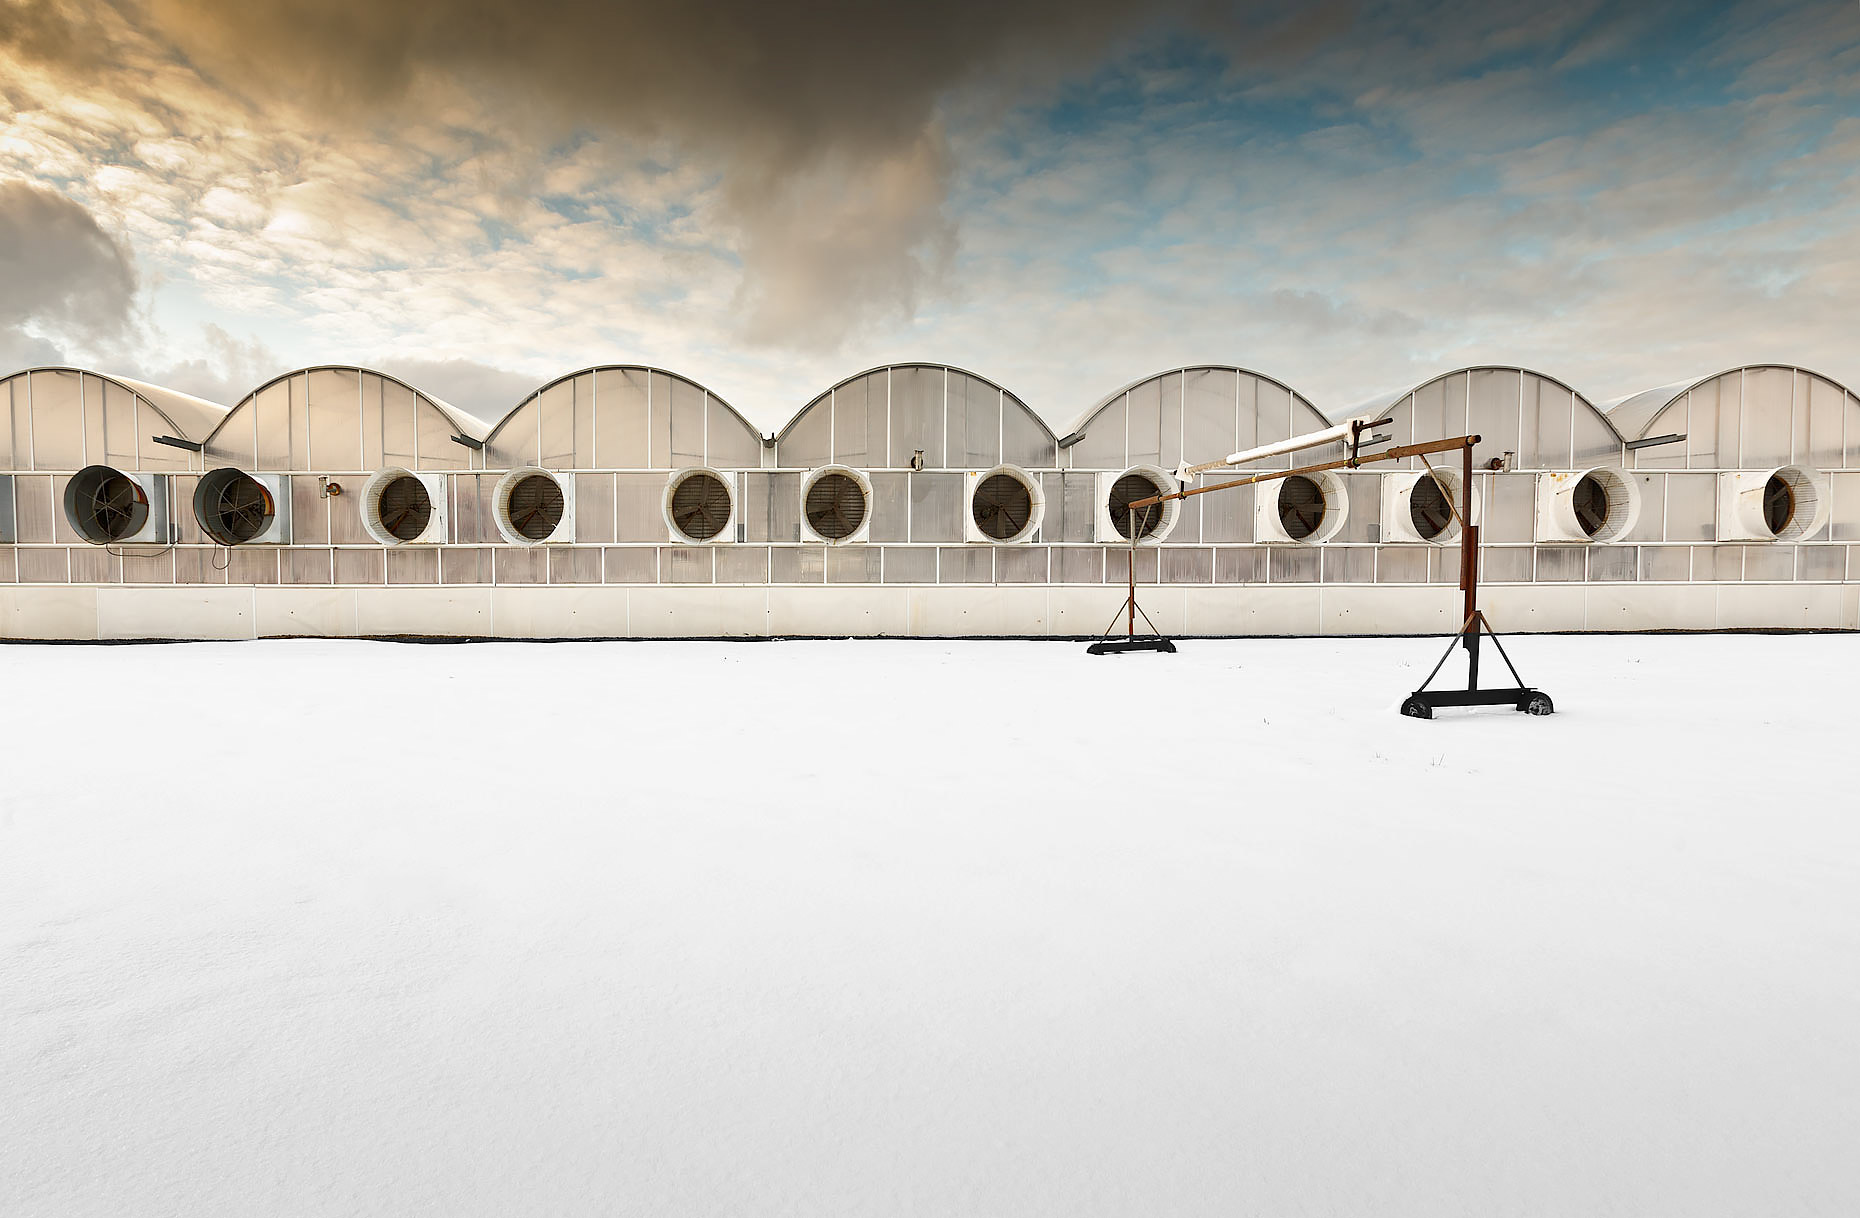 Ventilation fans outside greenhouses in winter |  Scott Gable industrial photographer